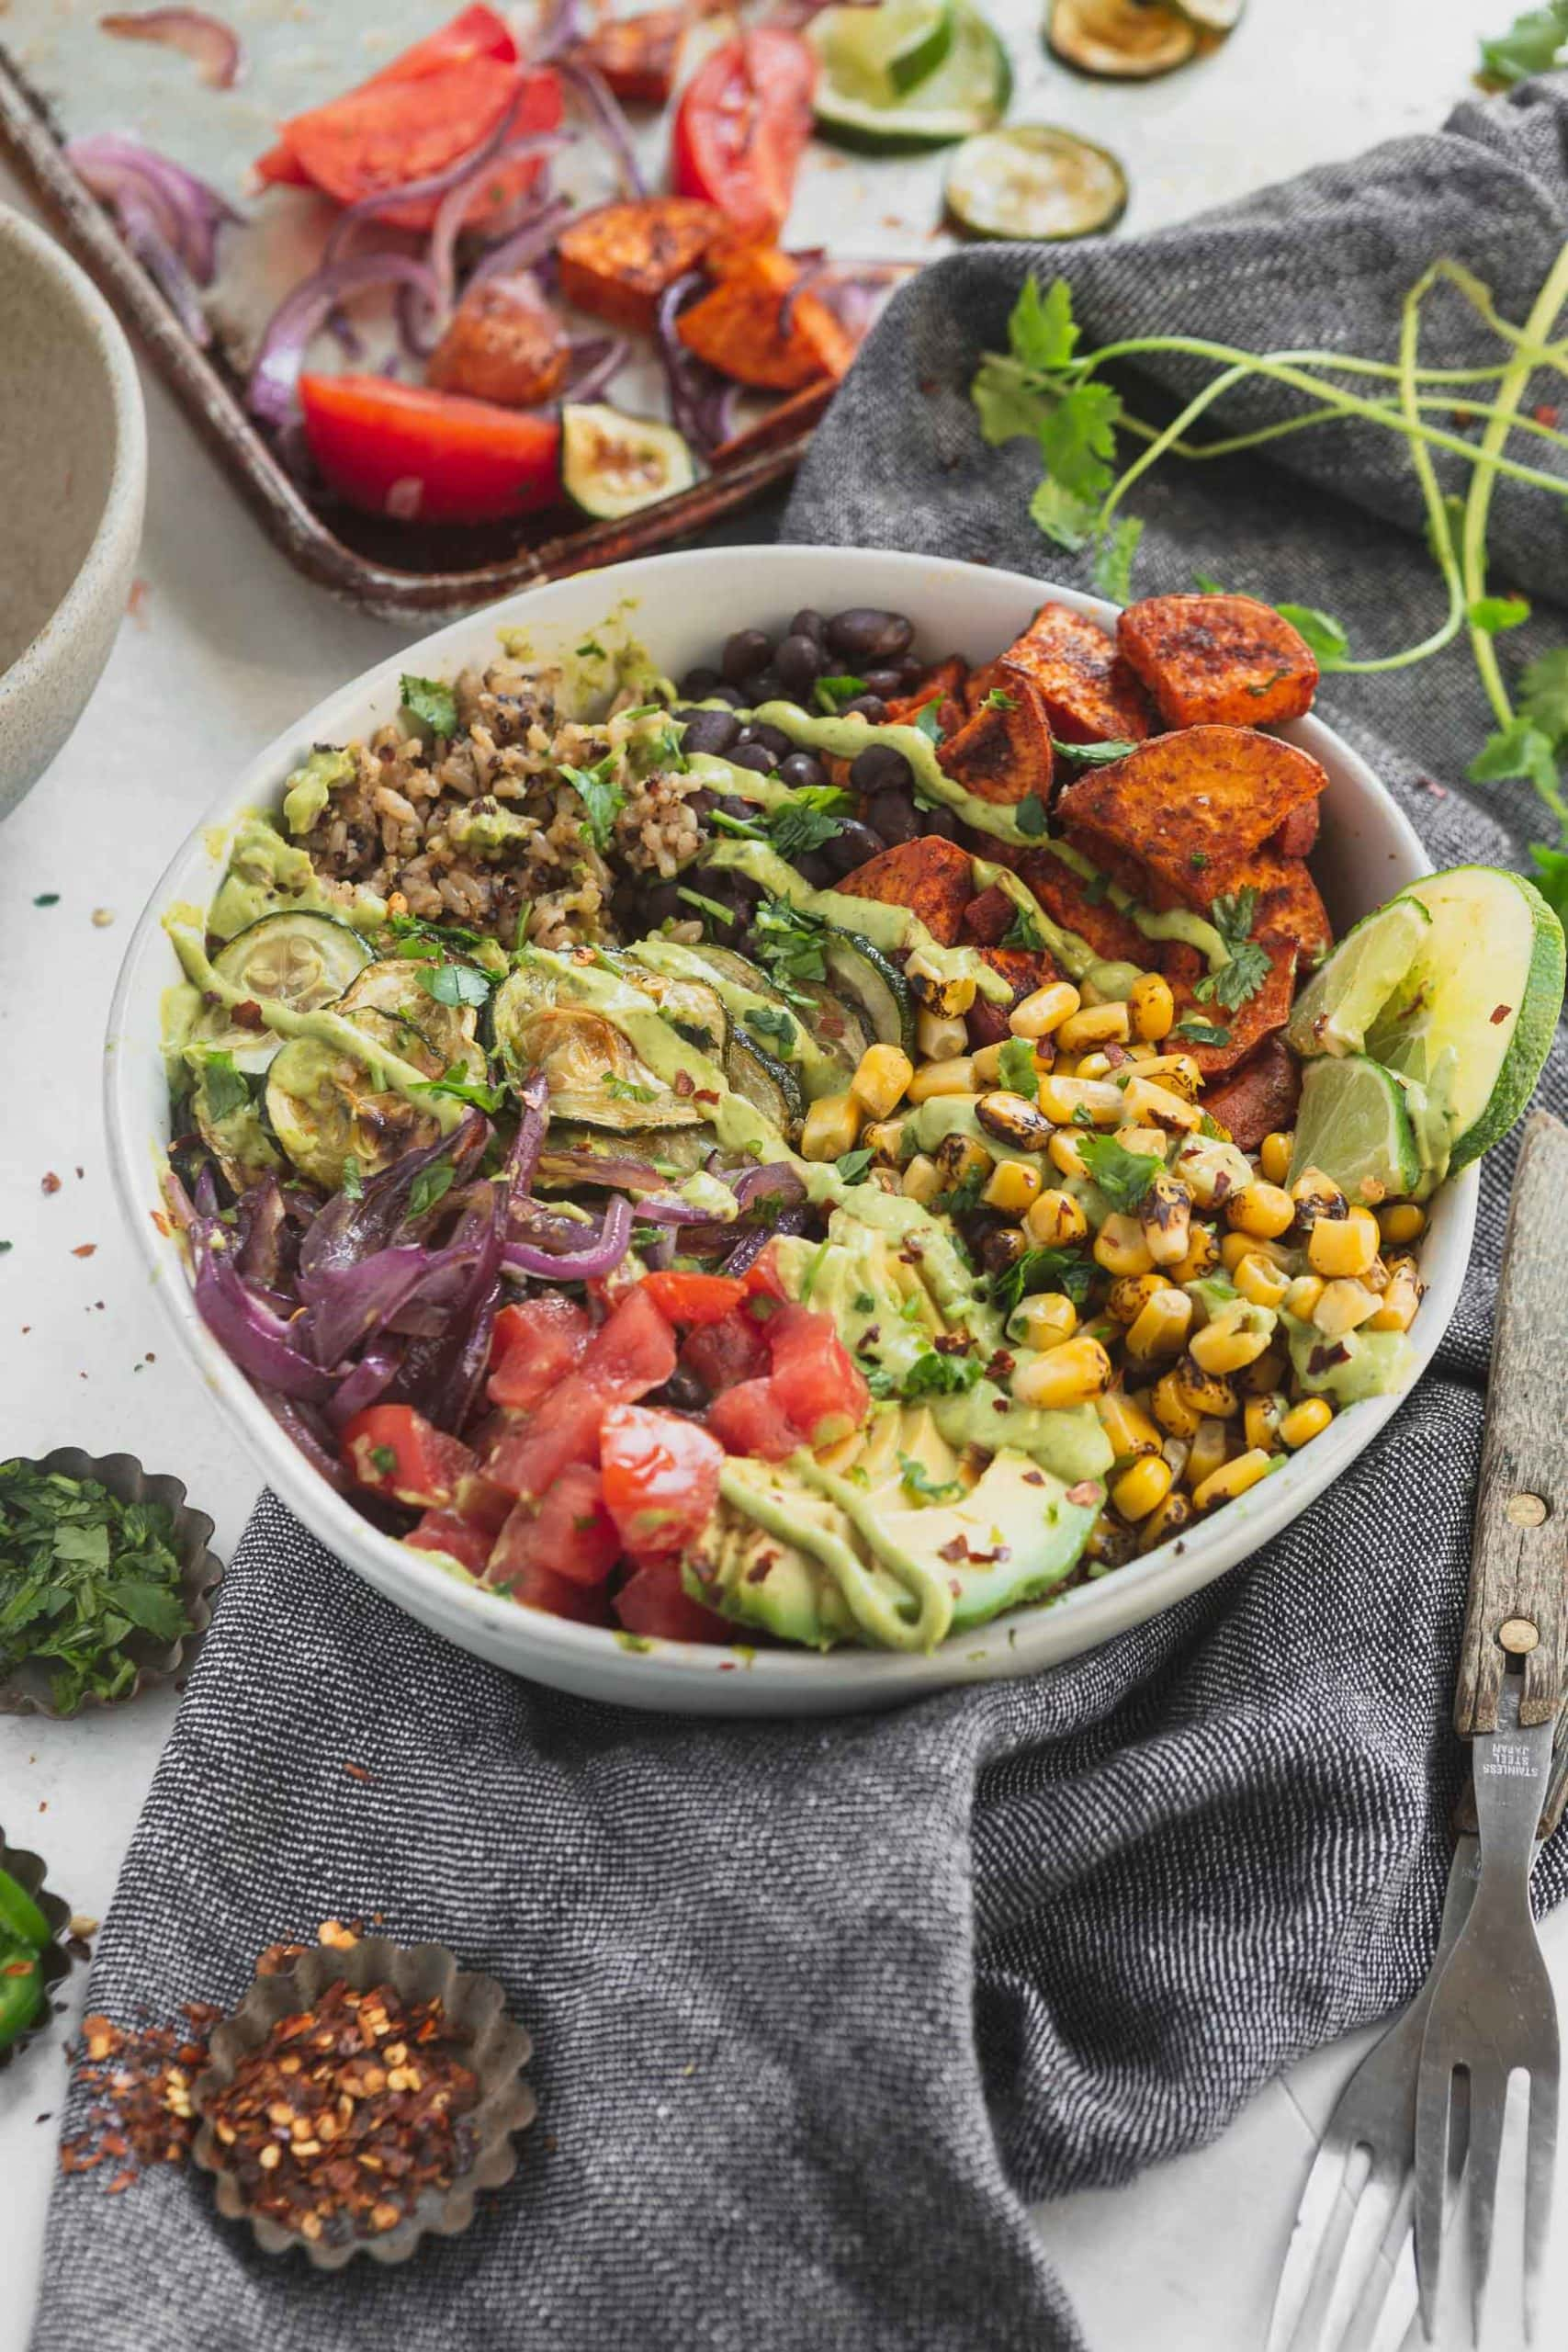 A vegan burrito bowl that contains tomatoes, avocados, roasted corn, sweet potatoes, zucchini and red onion. There is brown rice and quinoa in the burrito bowl.